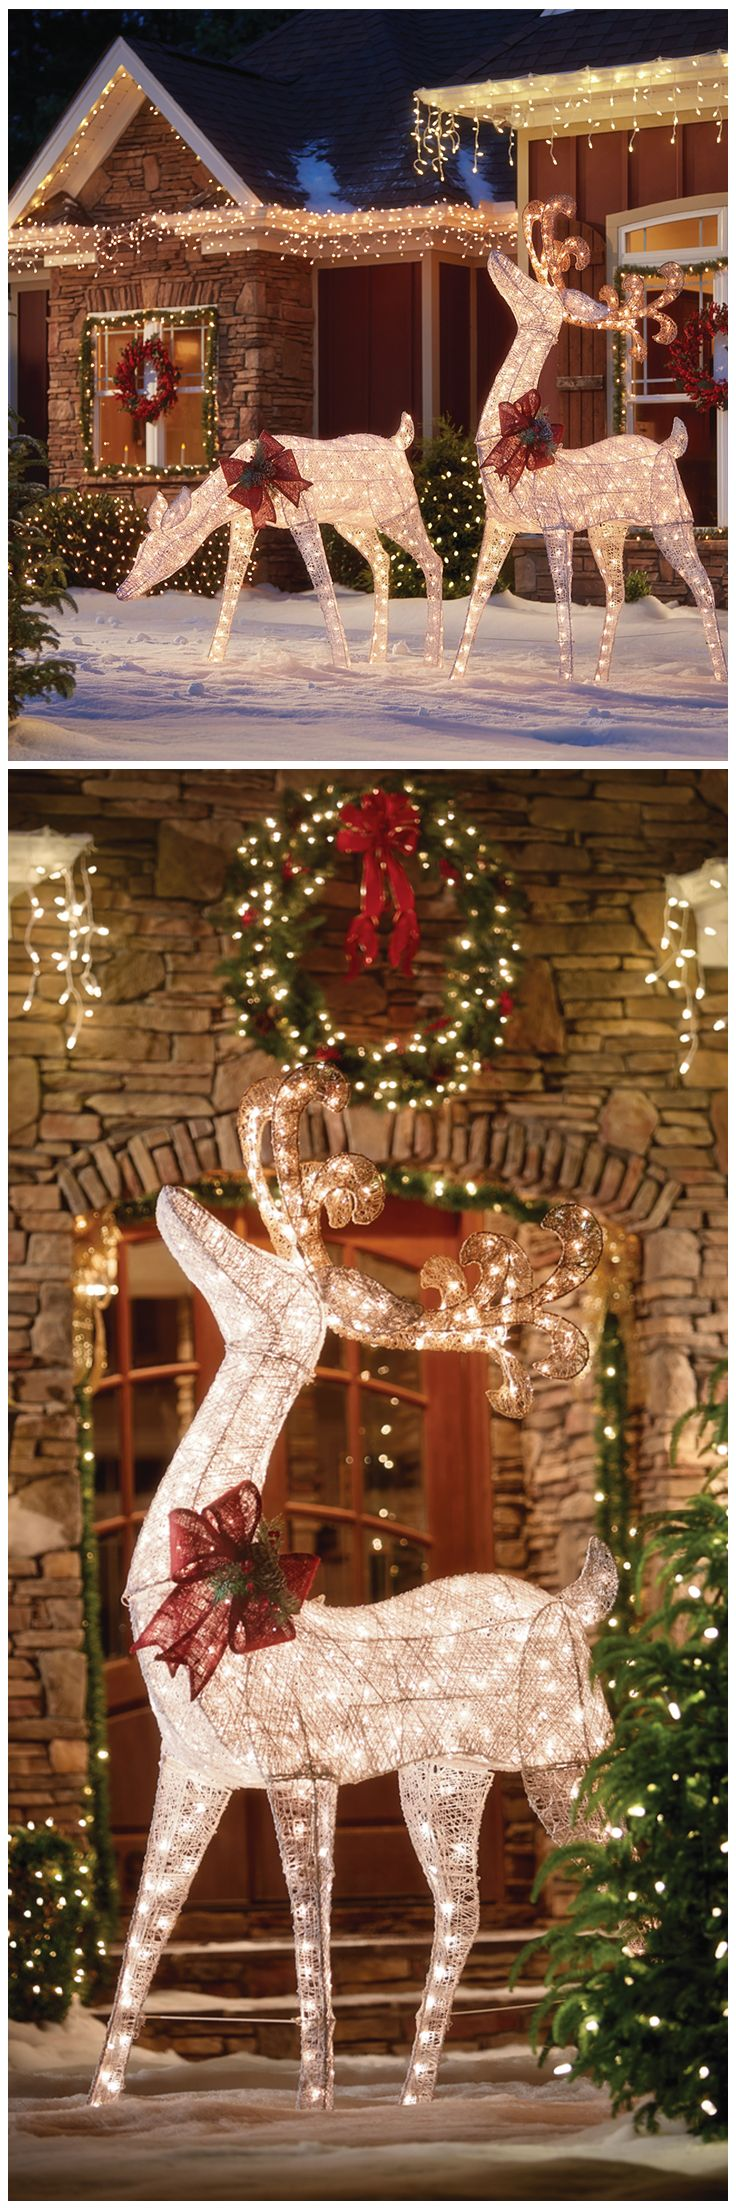 These luminous deer figures will add a classic, rustic charm to your outdoor  Christmas dcor